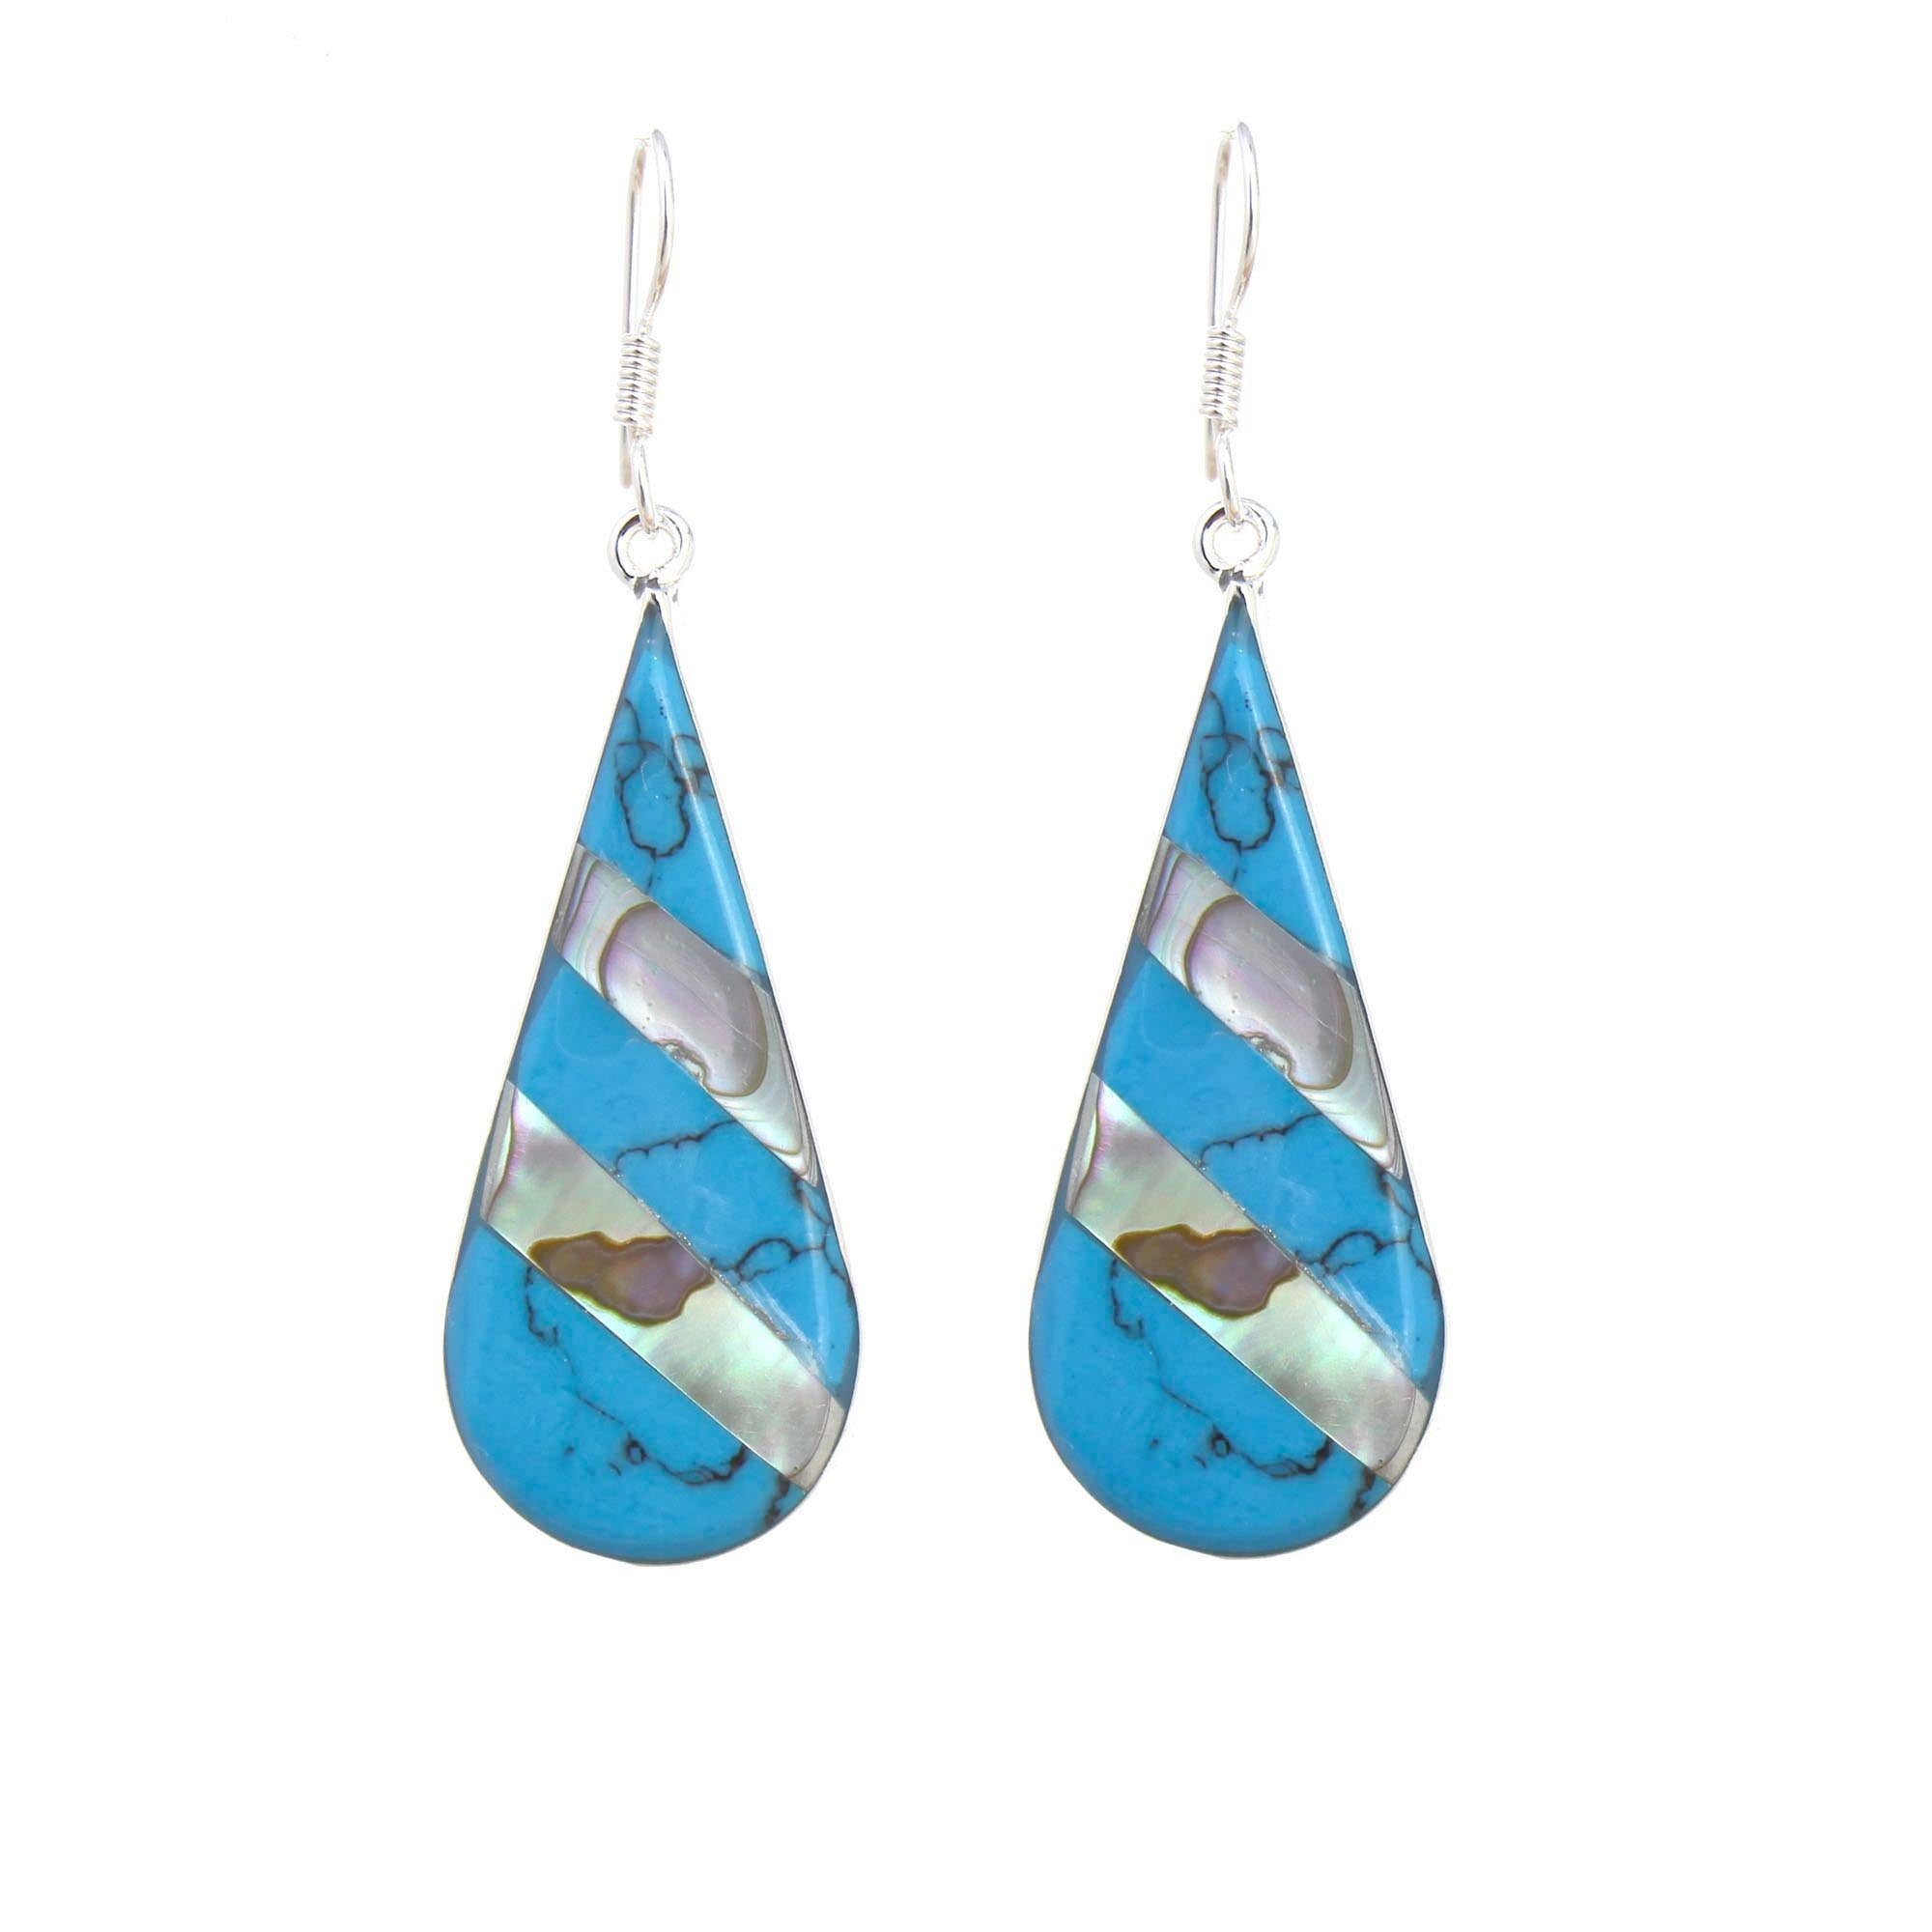 Turquoise & Abalone Stripe Teardrop Earrings